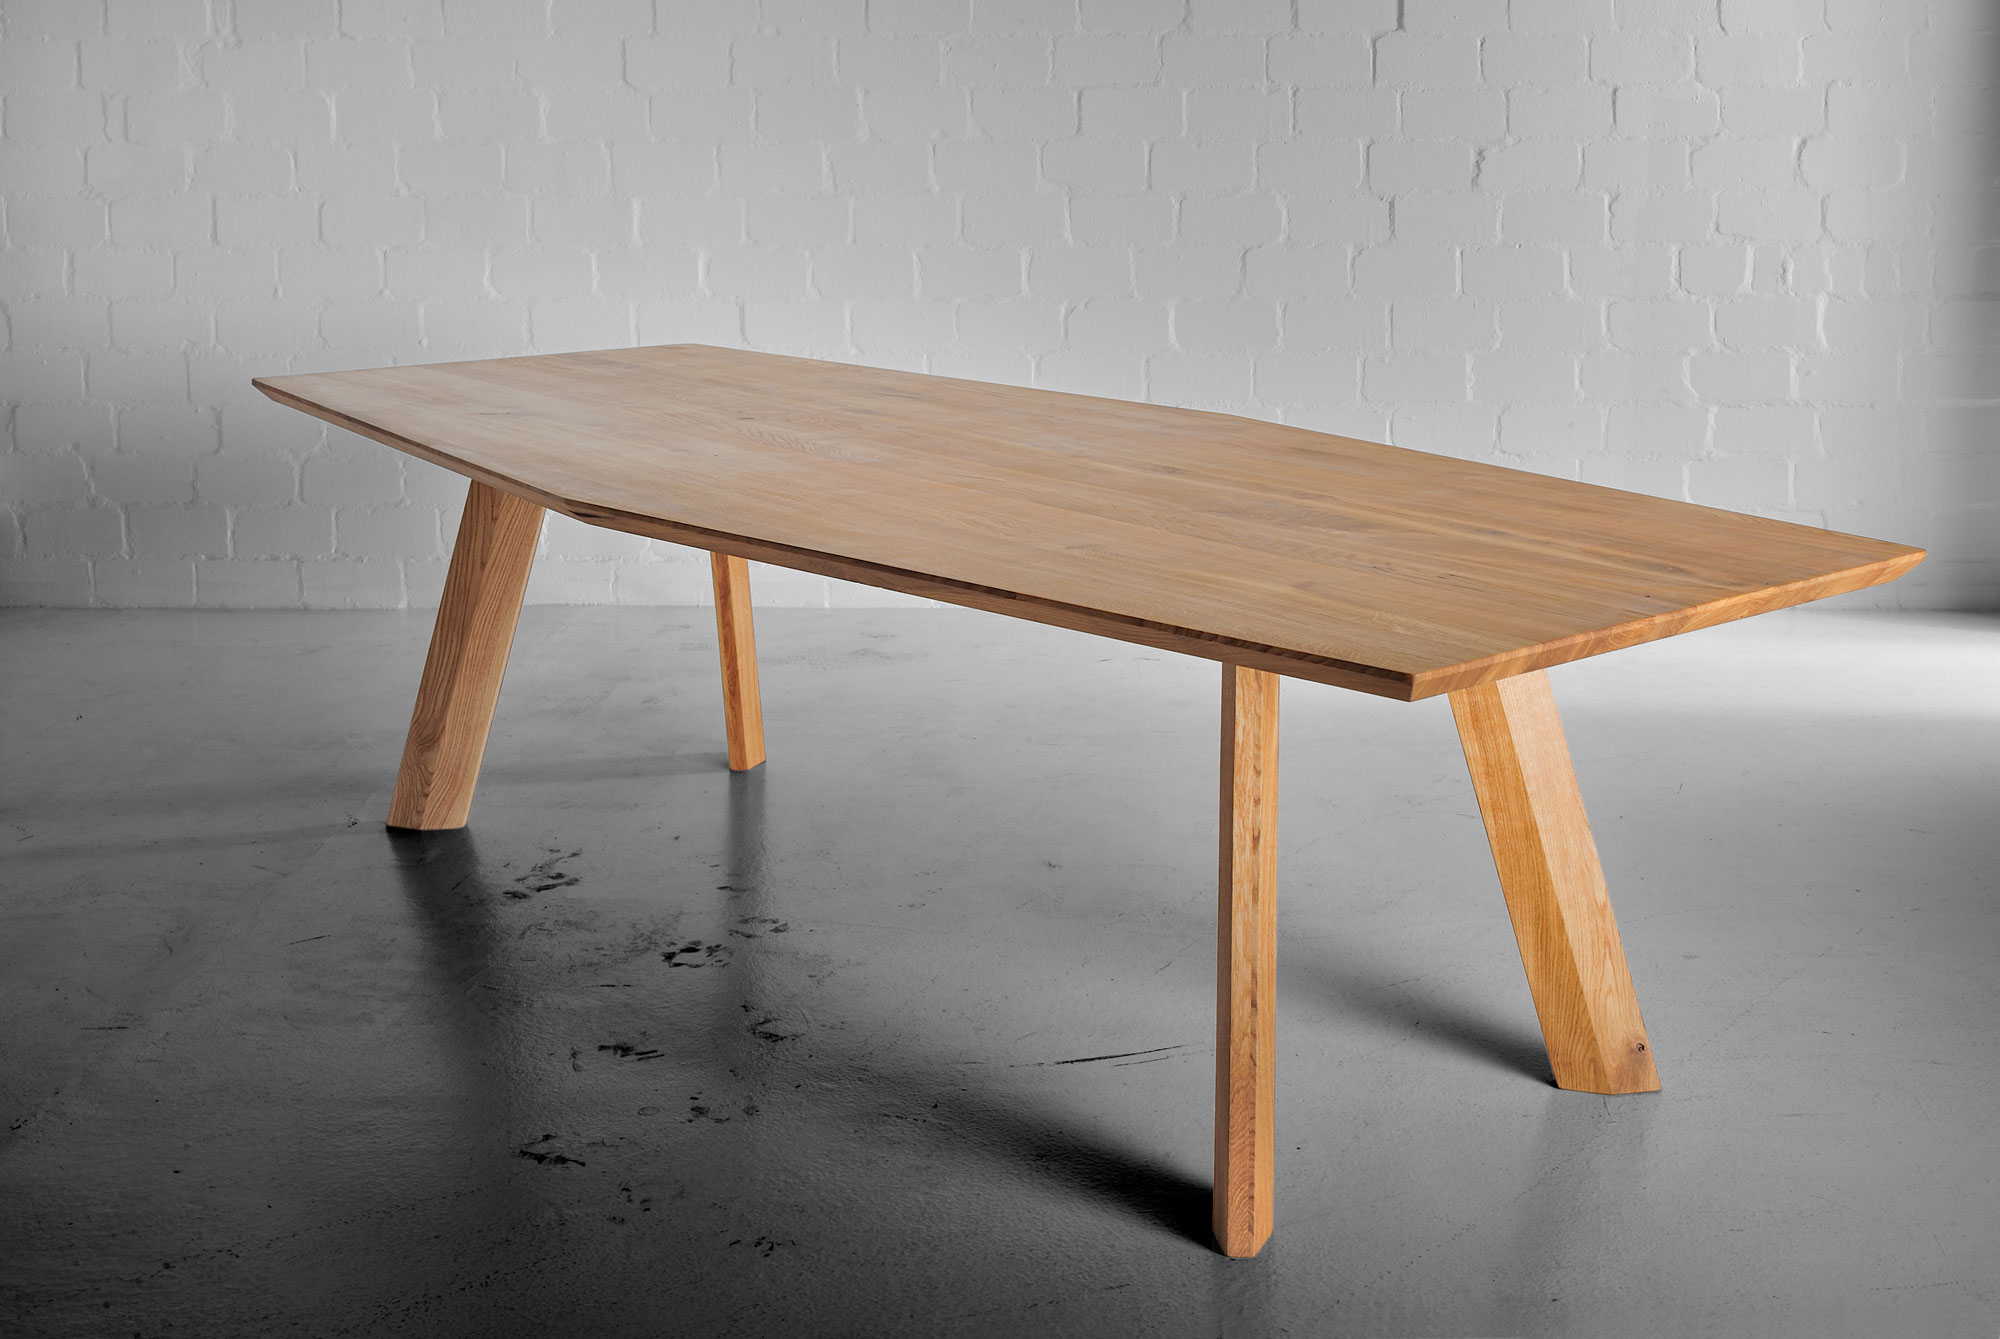 Designer Dining Table RHOMBI d custom made in solid wood by vitamin design